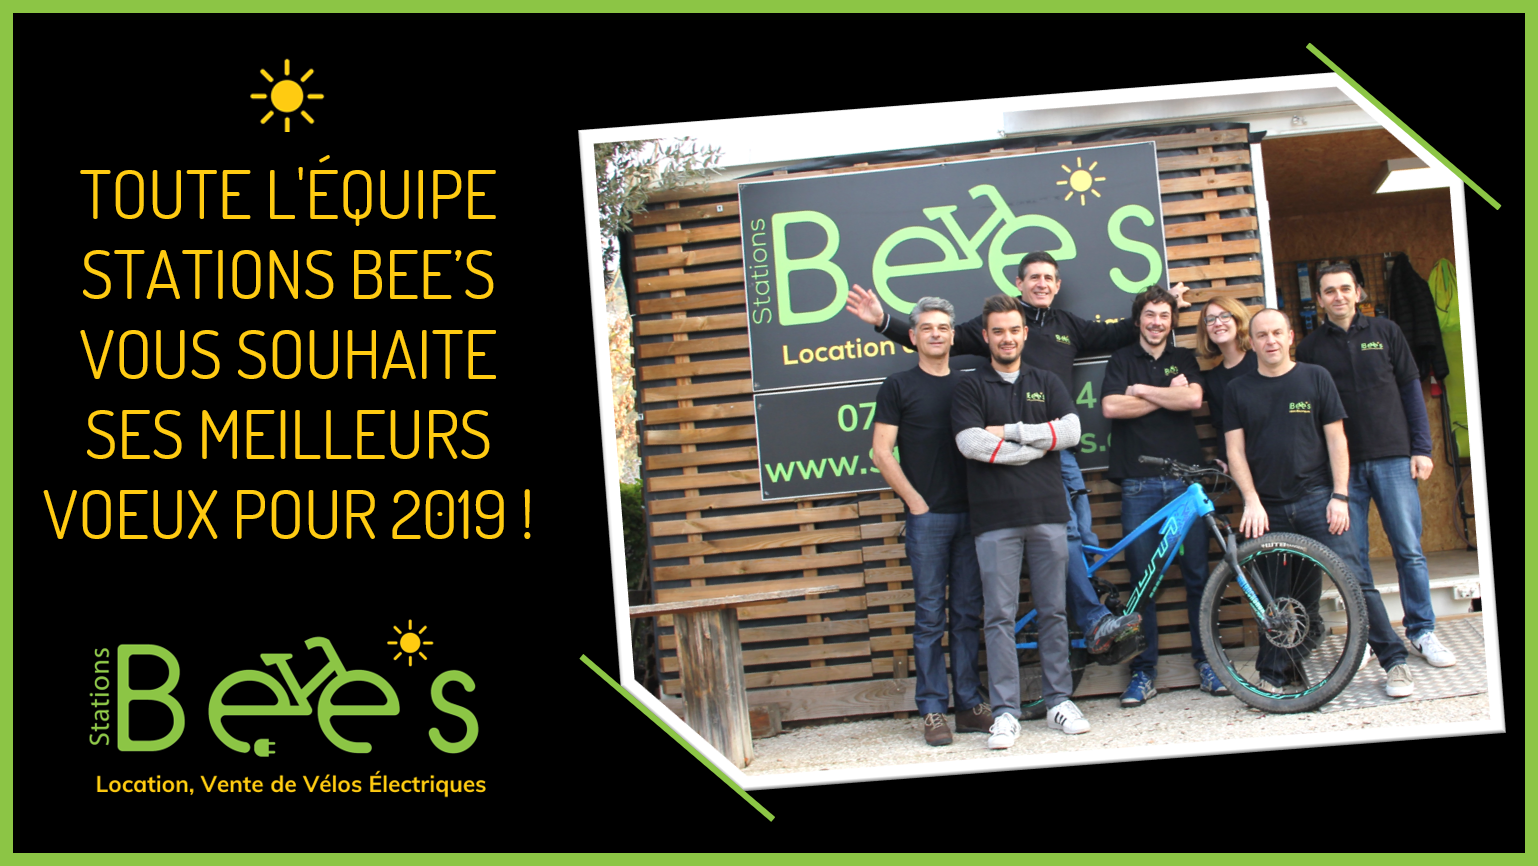 veoxu-2019-stationsbees-location-velo-electrique-provence